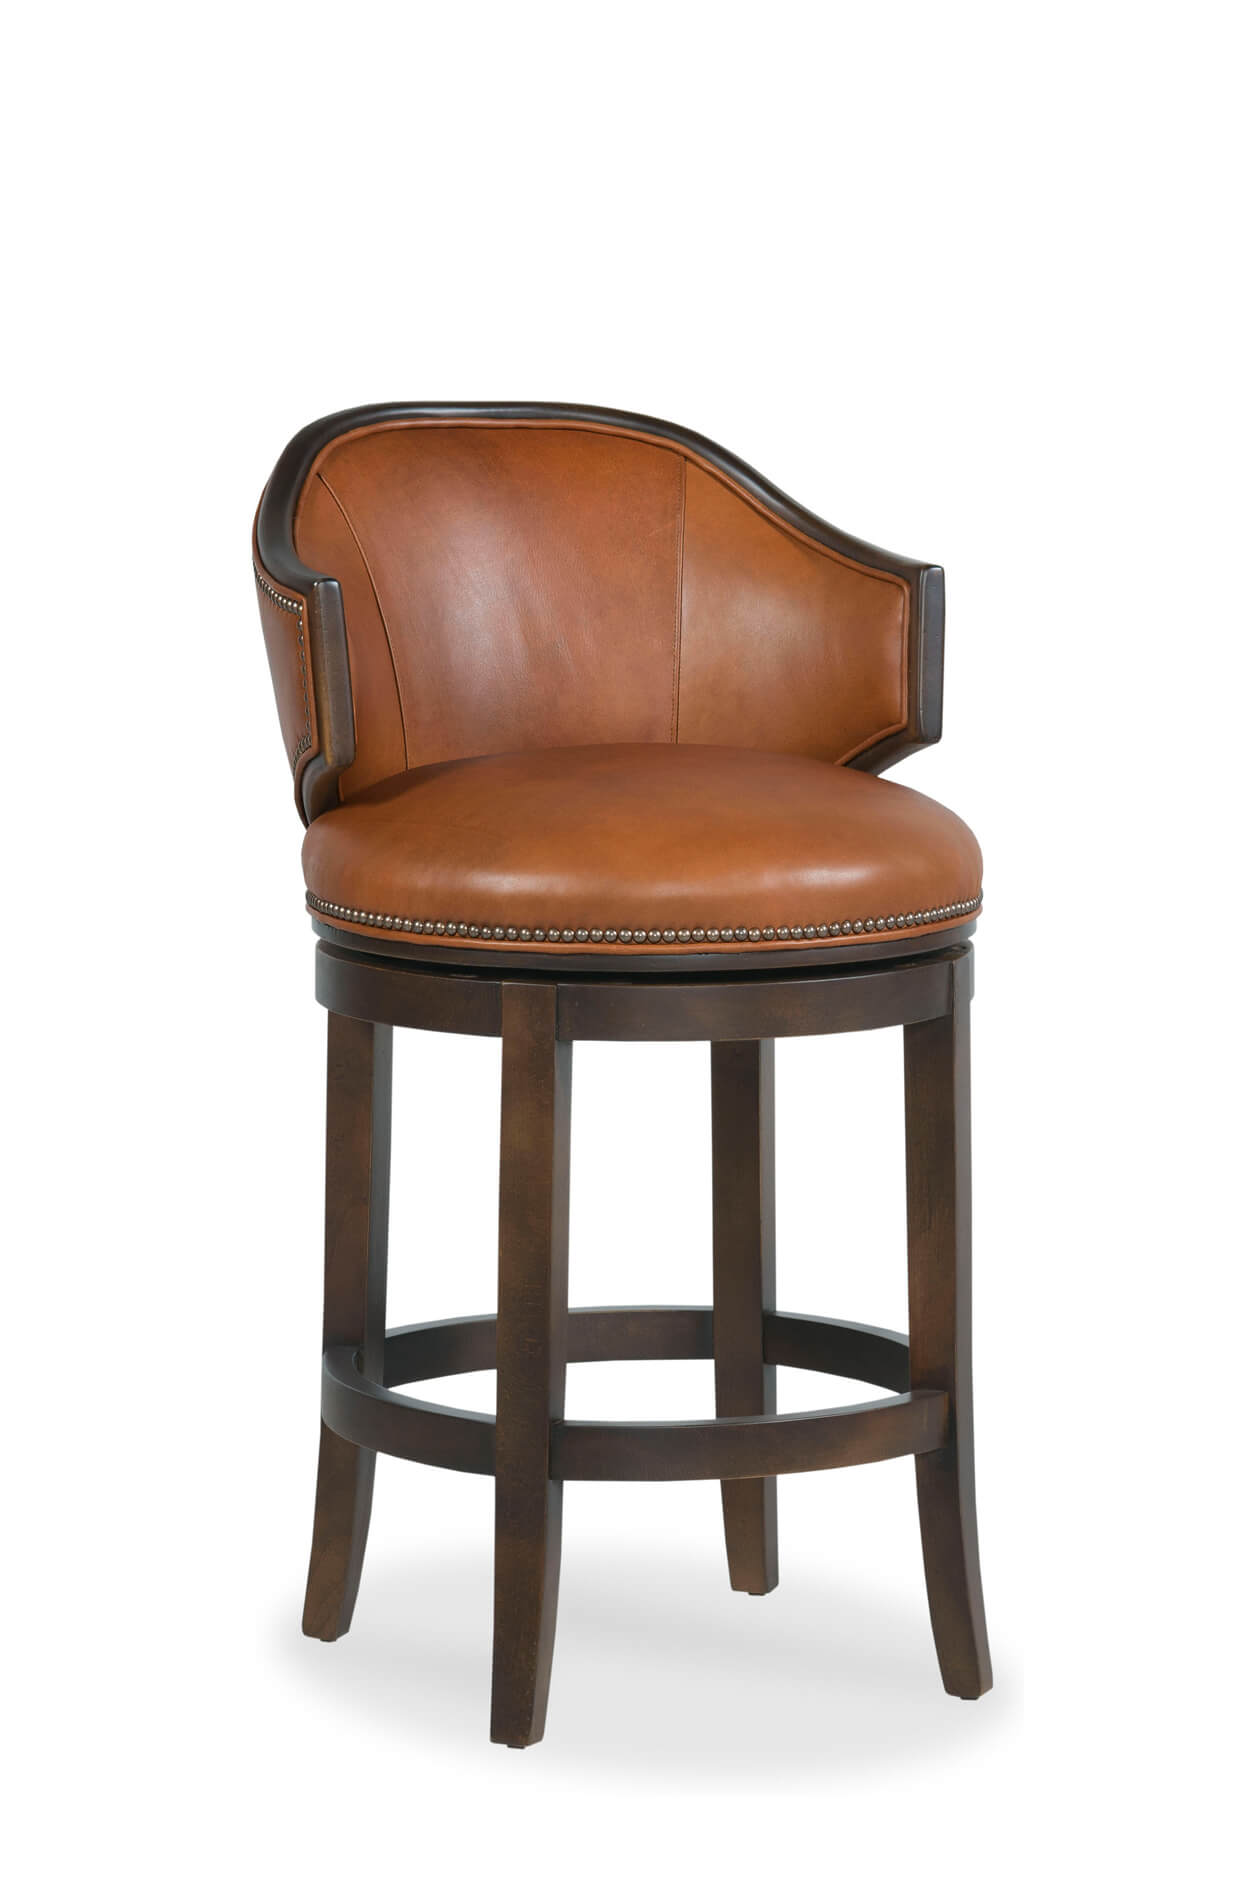 Awesome Gimlet Wooden Upholstered Swivel Stool With Arms Bralicious Painted Fabric Chair Ideas Braliciousco